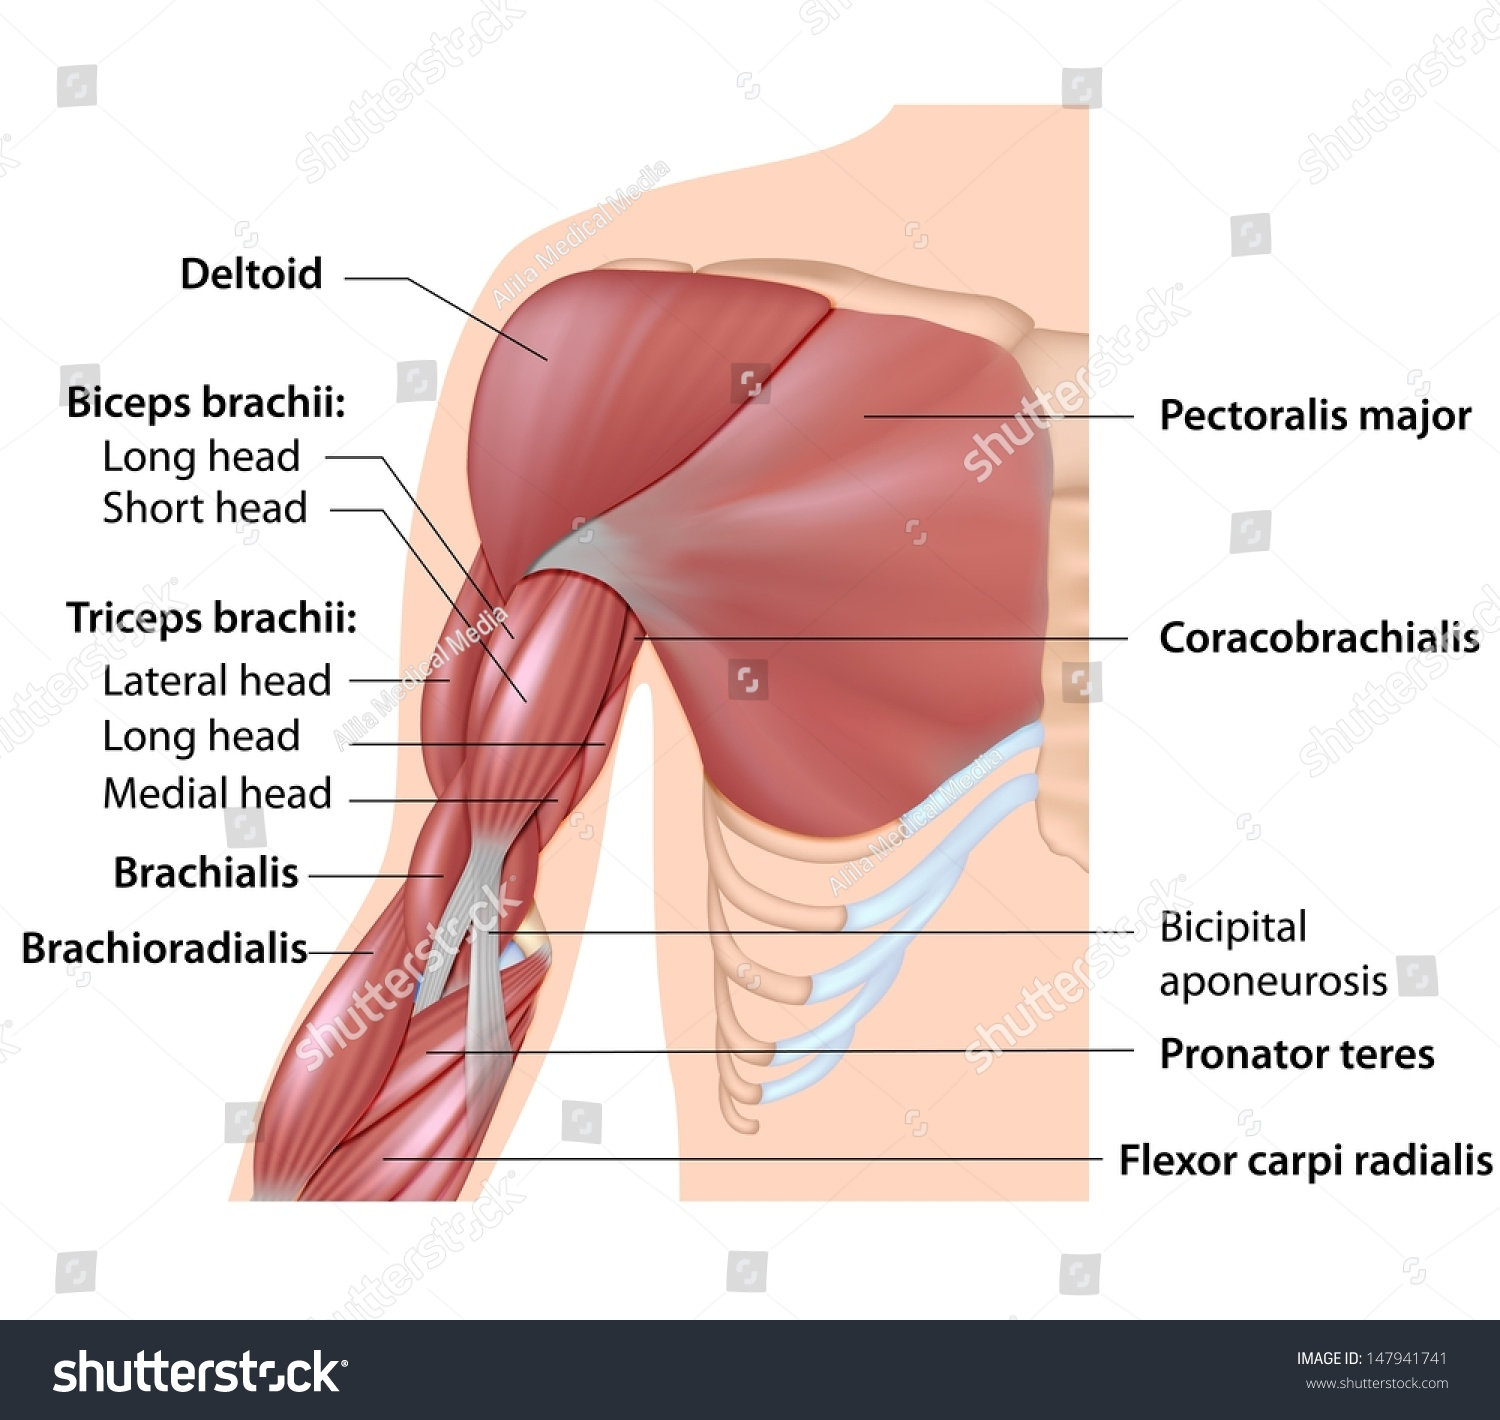 muscles arm anatomy labeled diagram stock illustration 147941741, Human Body